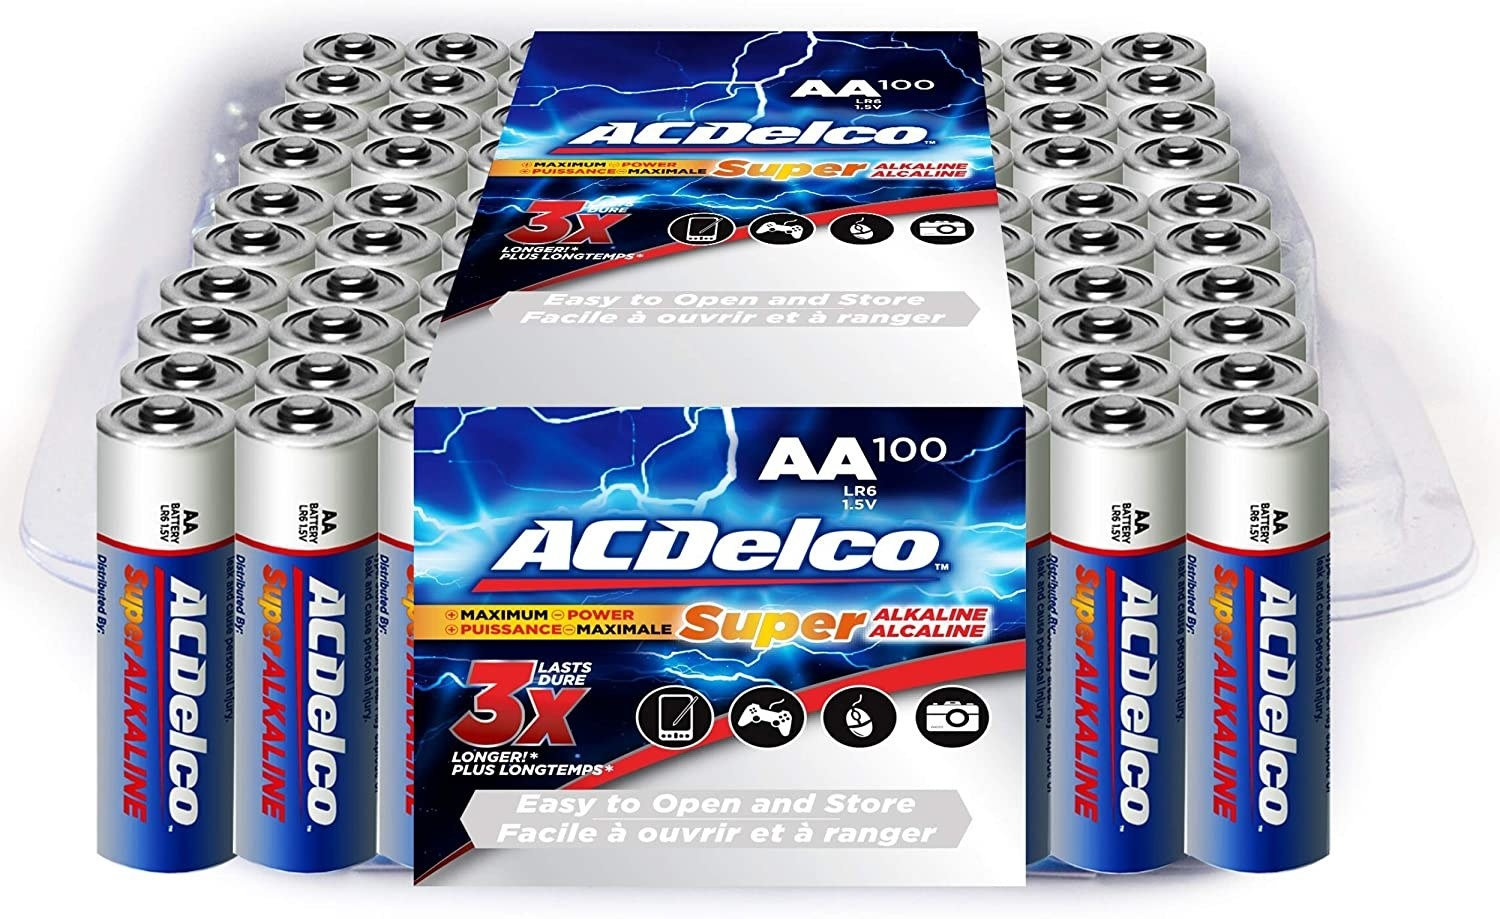 A pack of batteries